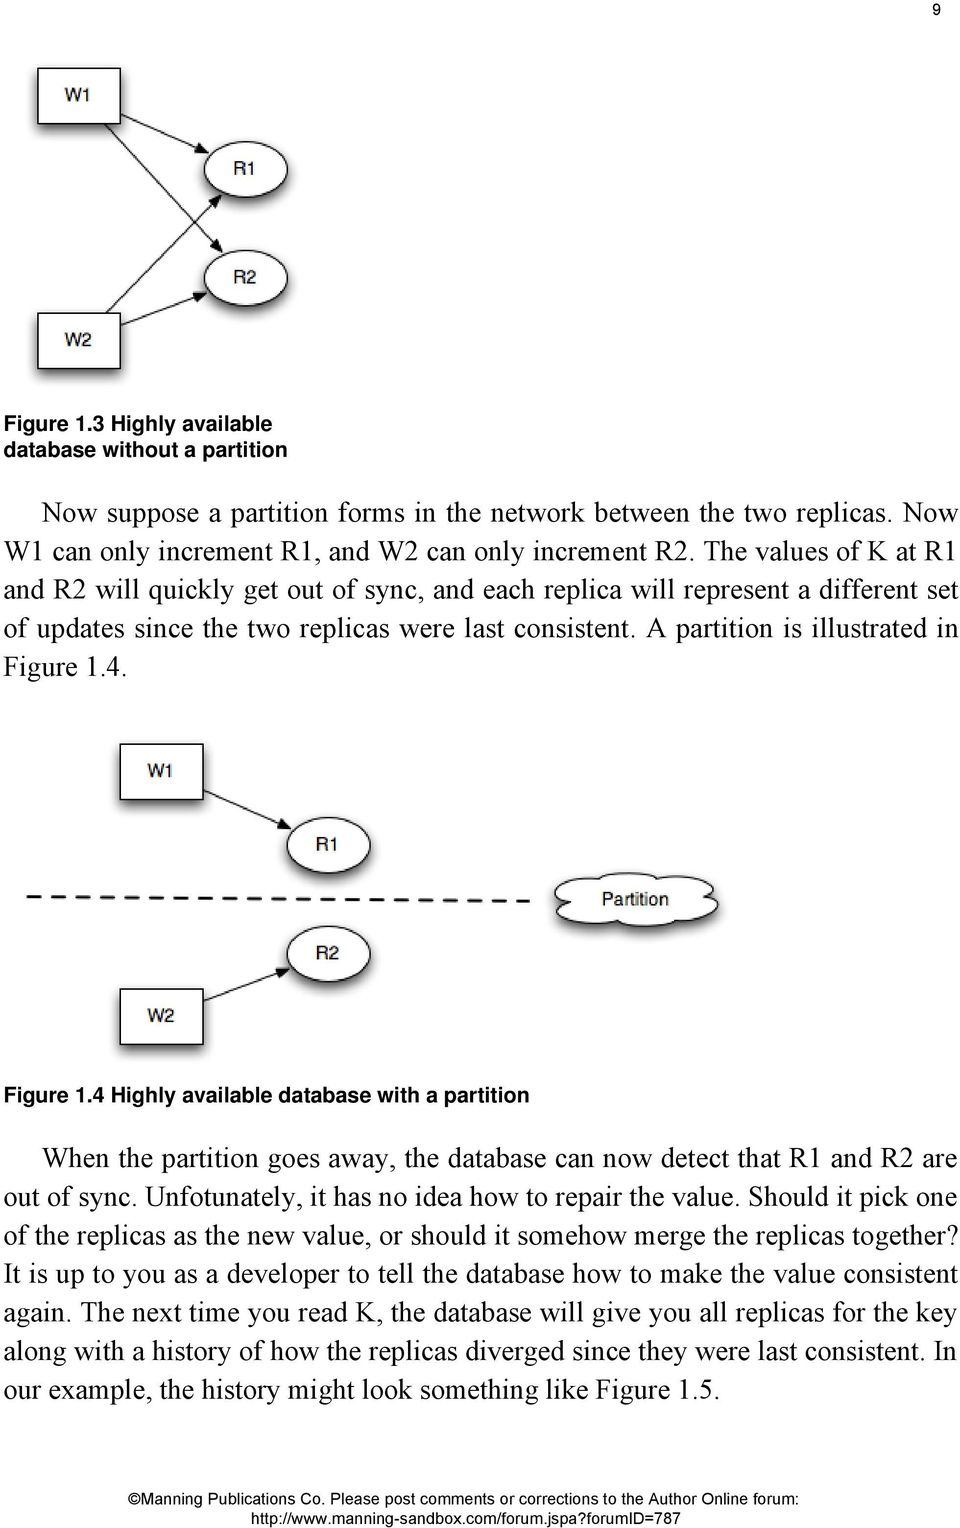 A partition is illustrated in Figure 1.4. Figure 1.4 Highly available database with a partition When the partition goes away, the database can now detect that R1 and R2 are out of sync.